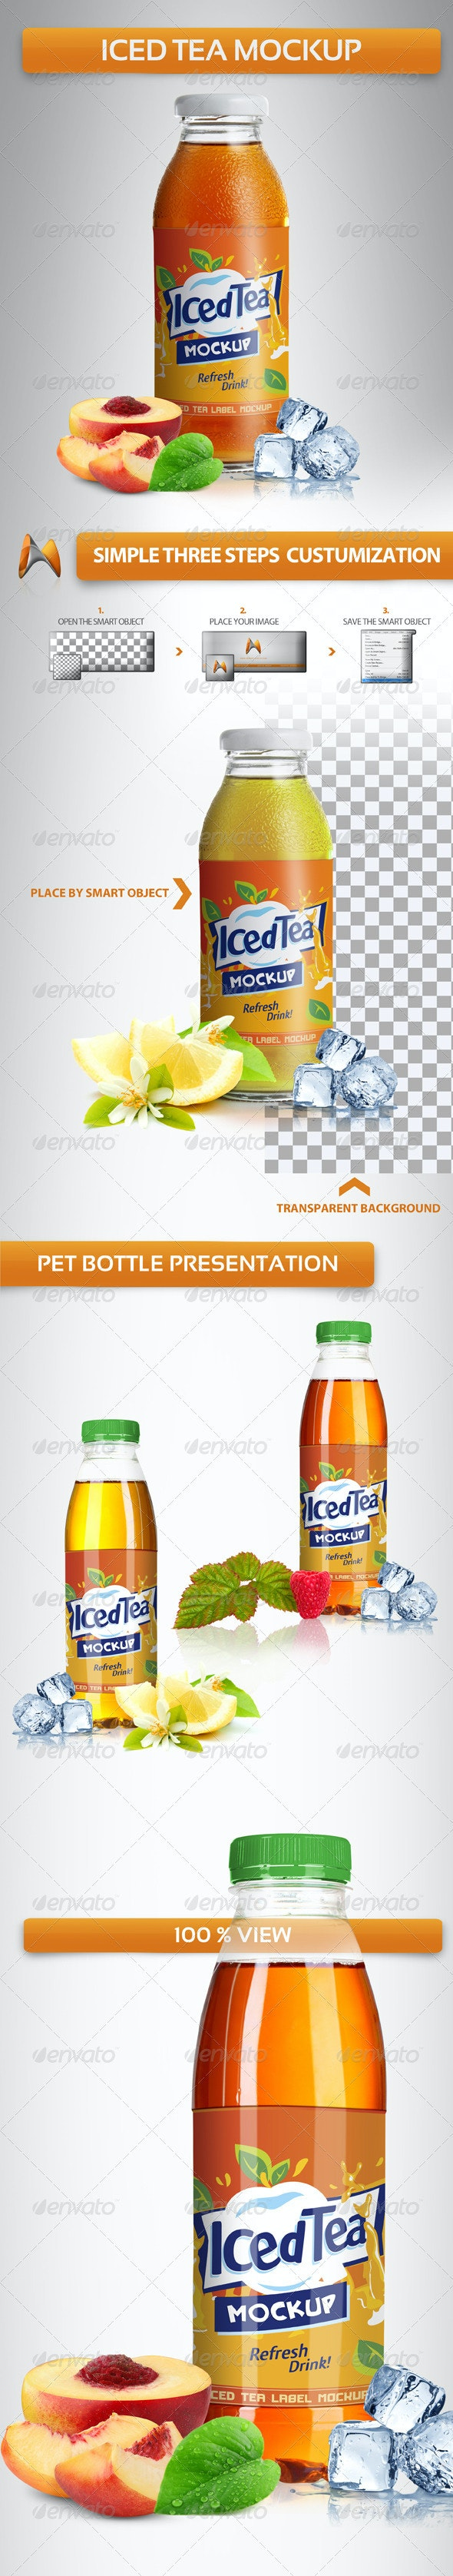 Iced Tea Mockup - Food and Drink Packaging